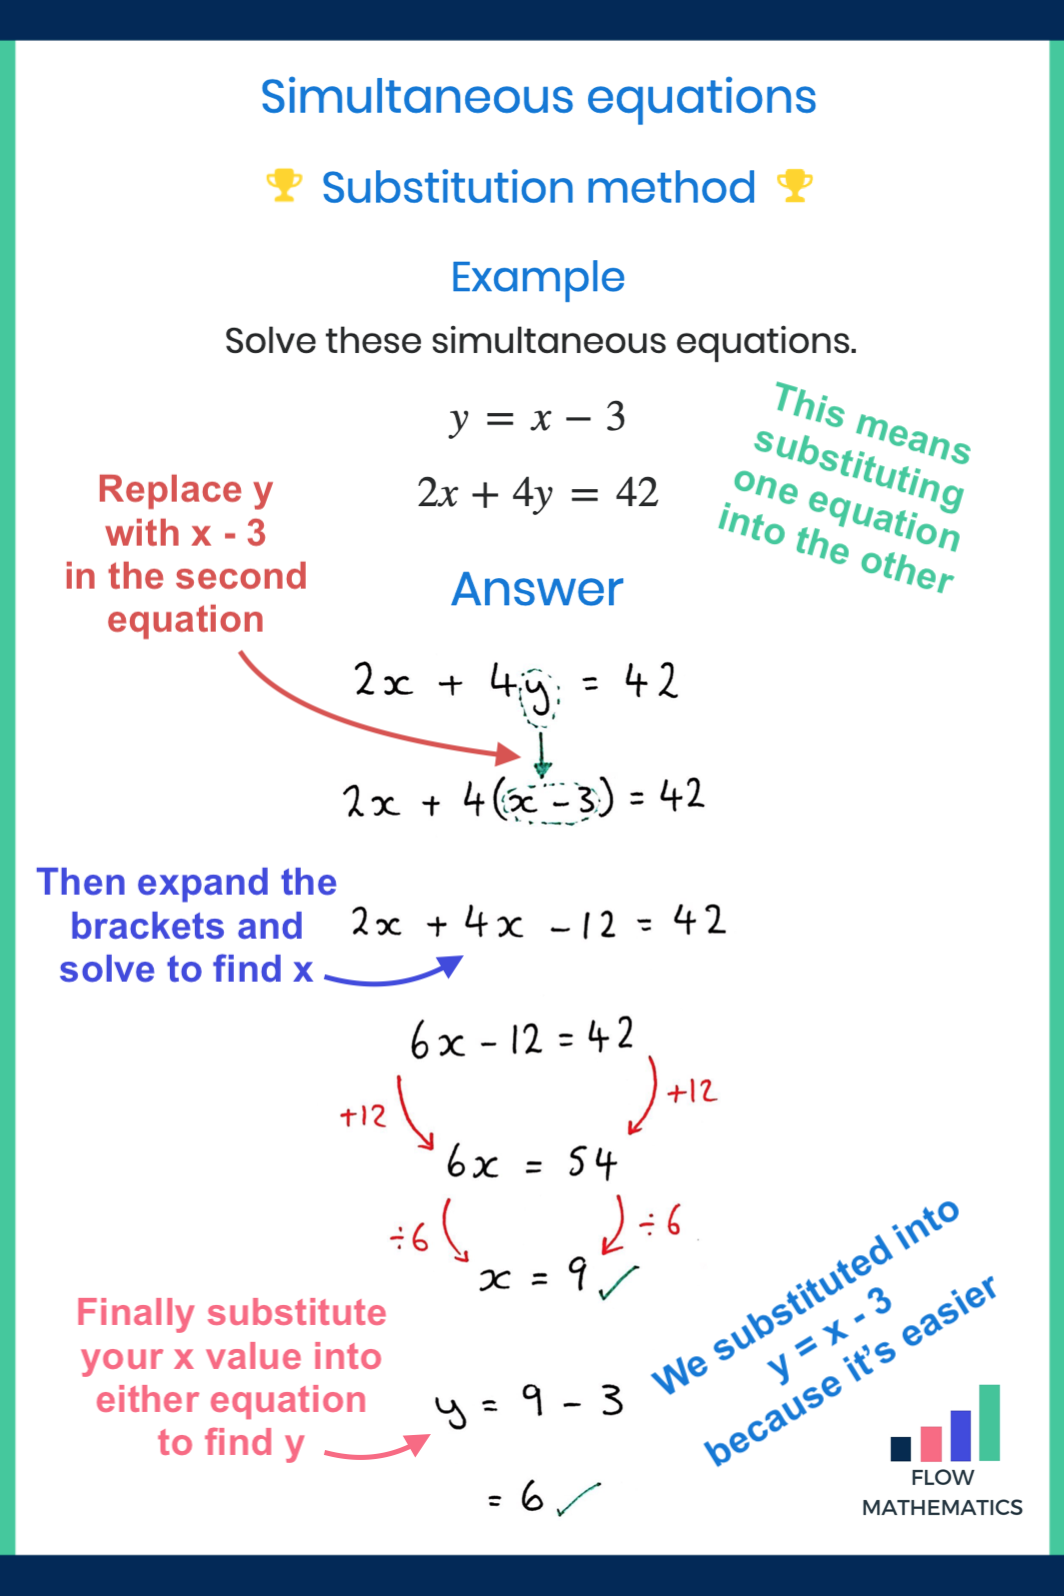 Solving Simultaneous Equations Using The Substitution